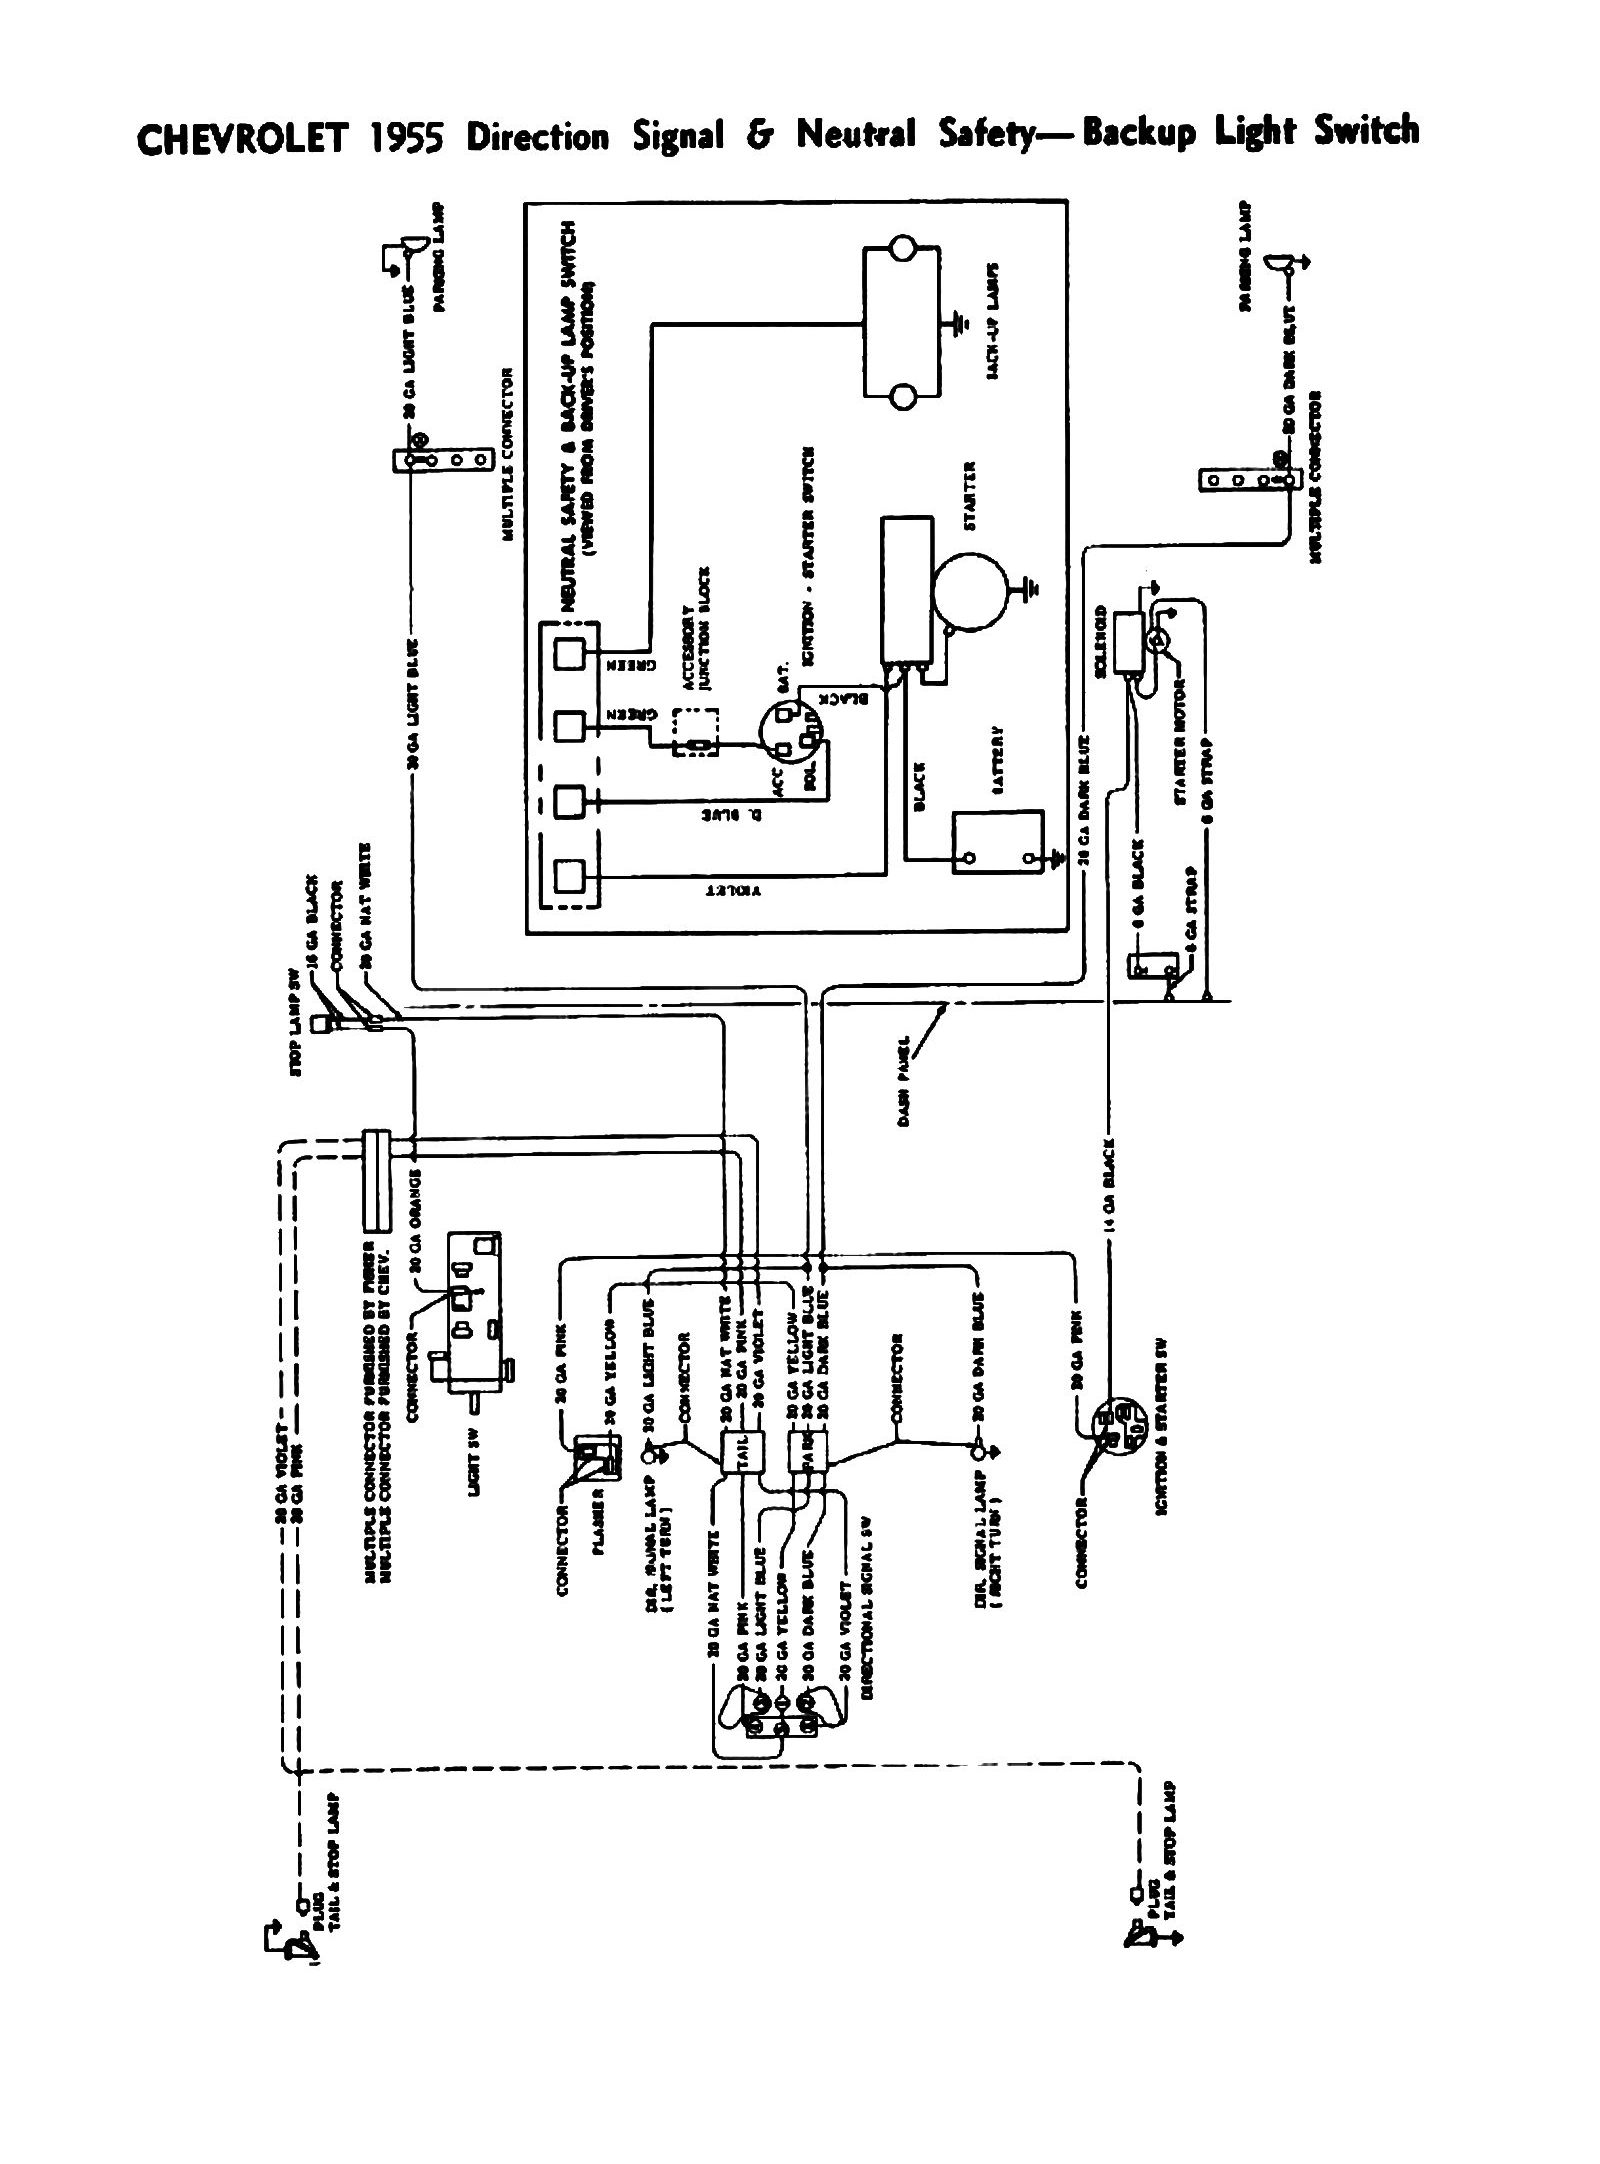 Fordwiringdiagram Twospeedwiper Large additionally Car Chevy Wiring Diagram as well Signal in addition Chevrolet Express Van Wiring Diagram moreover Headlight Switch Wiring Zps Eaplhxm. on 1957 chevy ignition switch wiring diagram